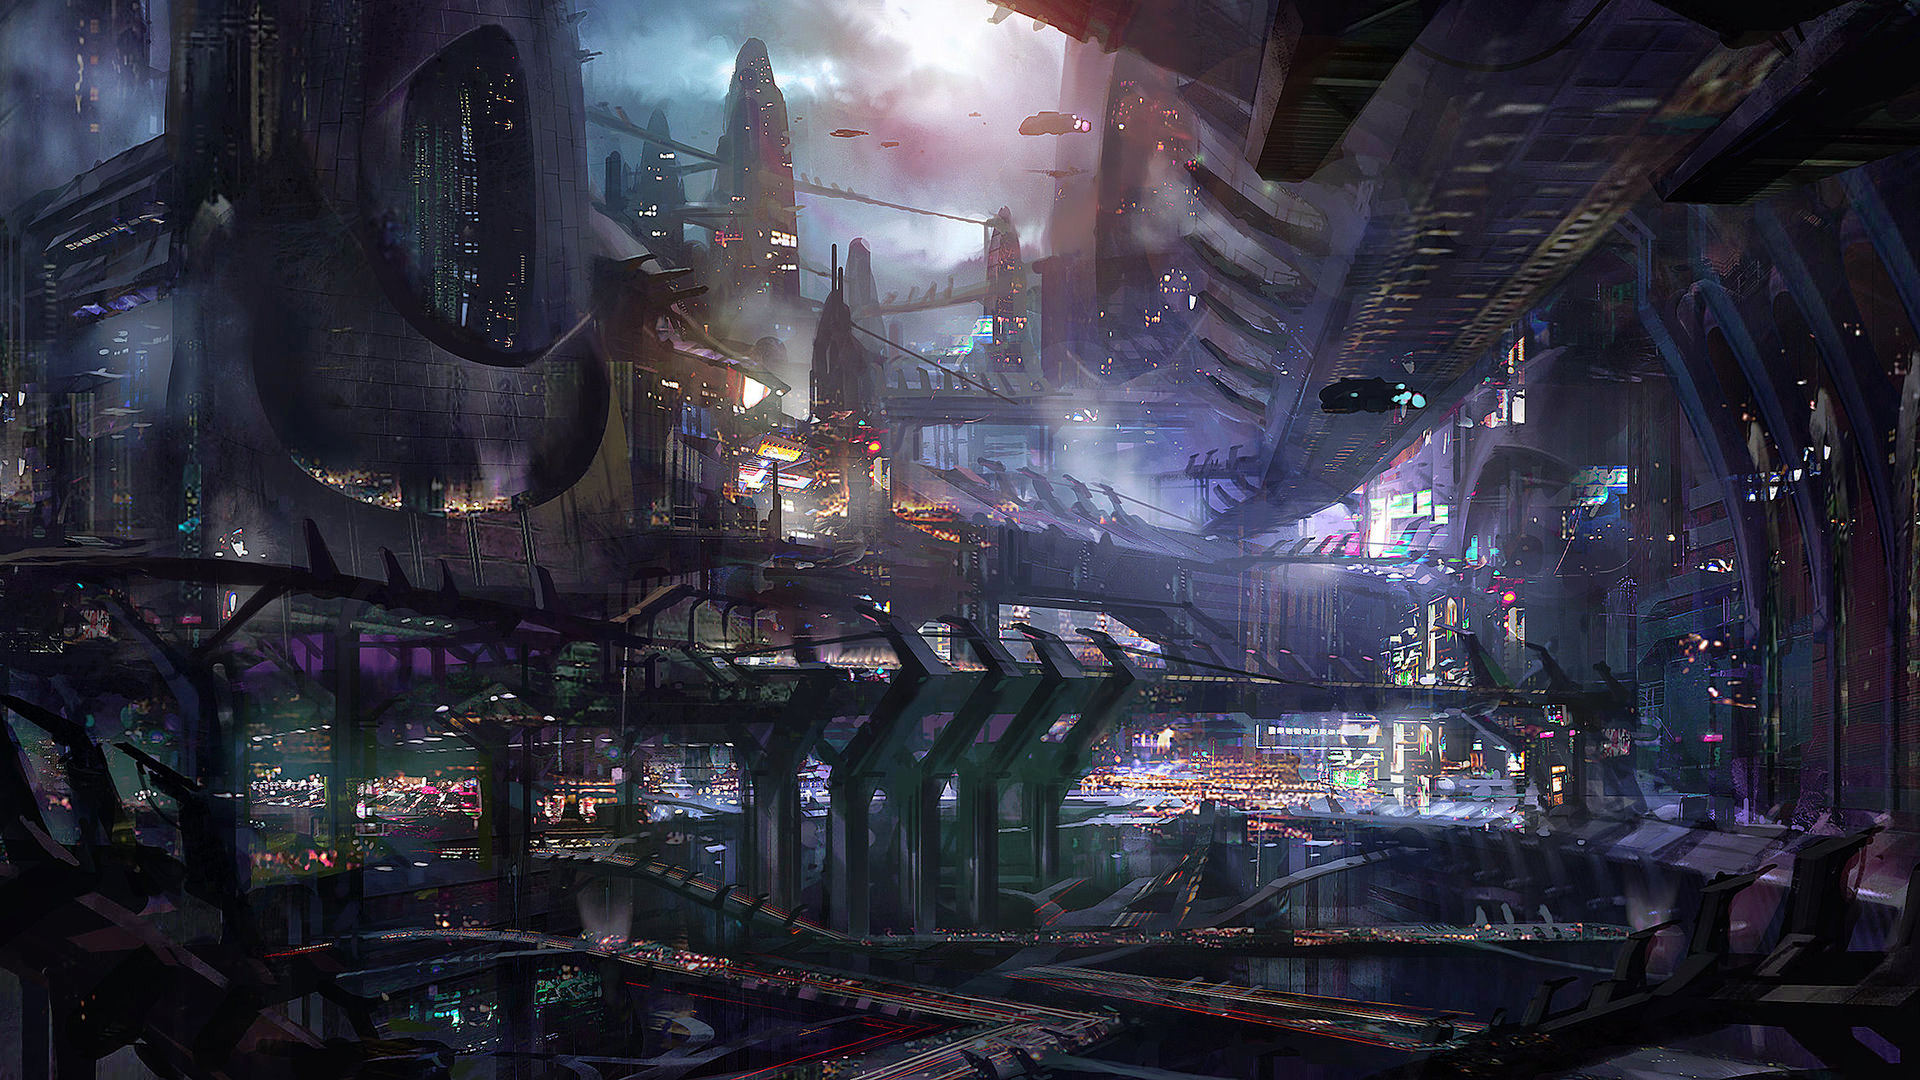 Amazing HD Sci Fi Wallpapers For Your Android Smartphone Design 1920x1080